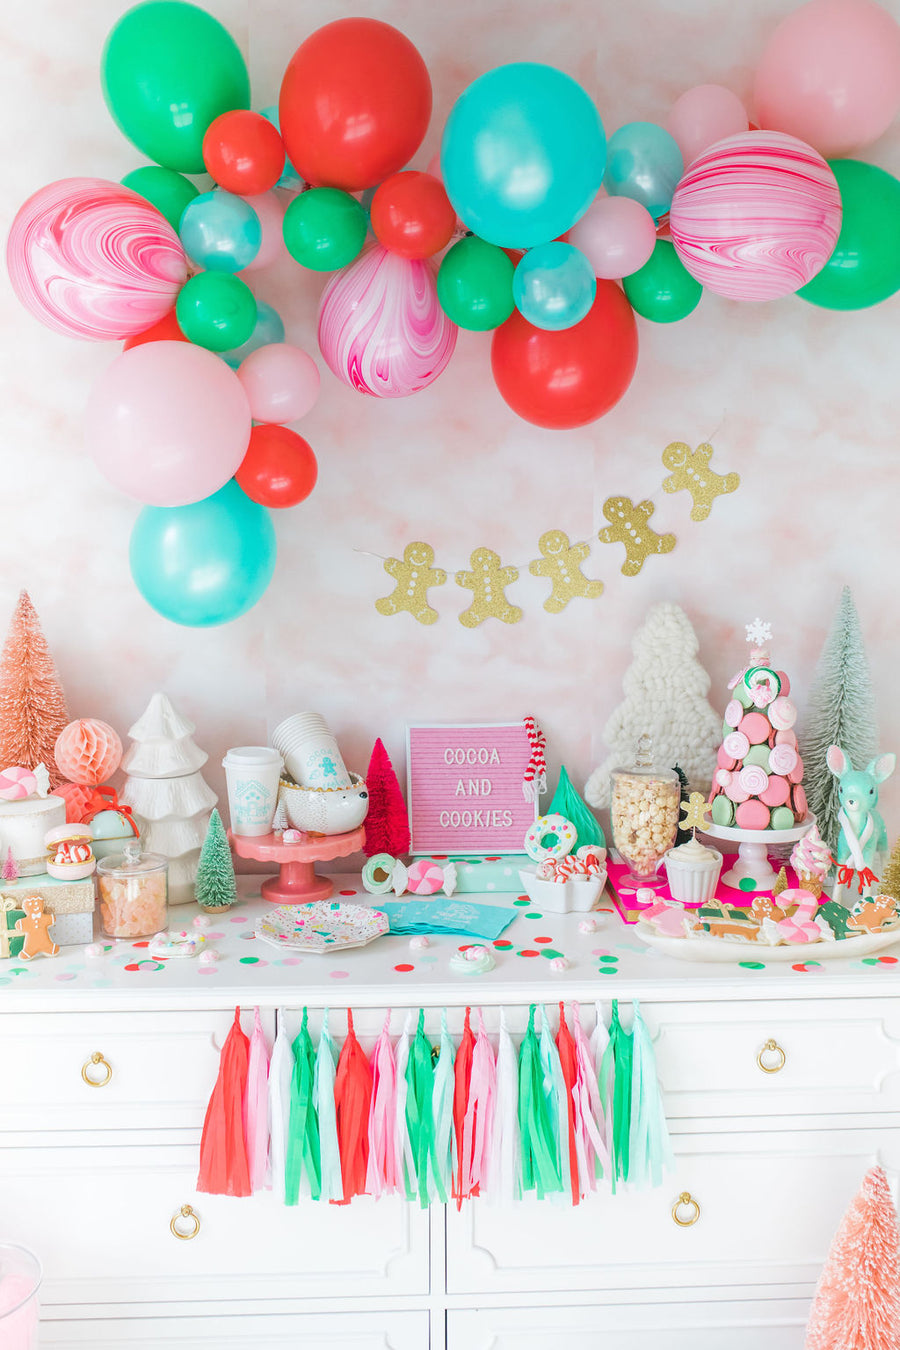 Colorful Christmas Balloon Garland Kit